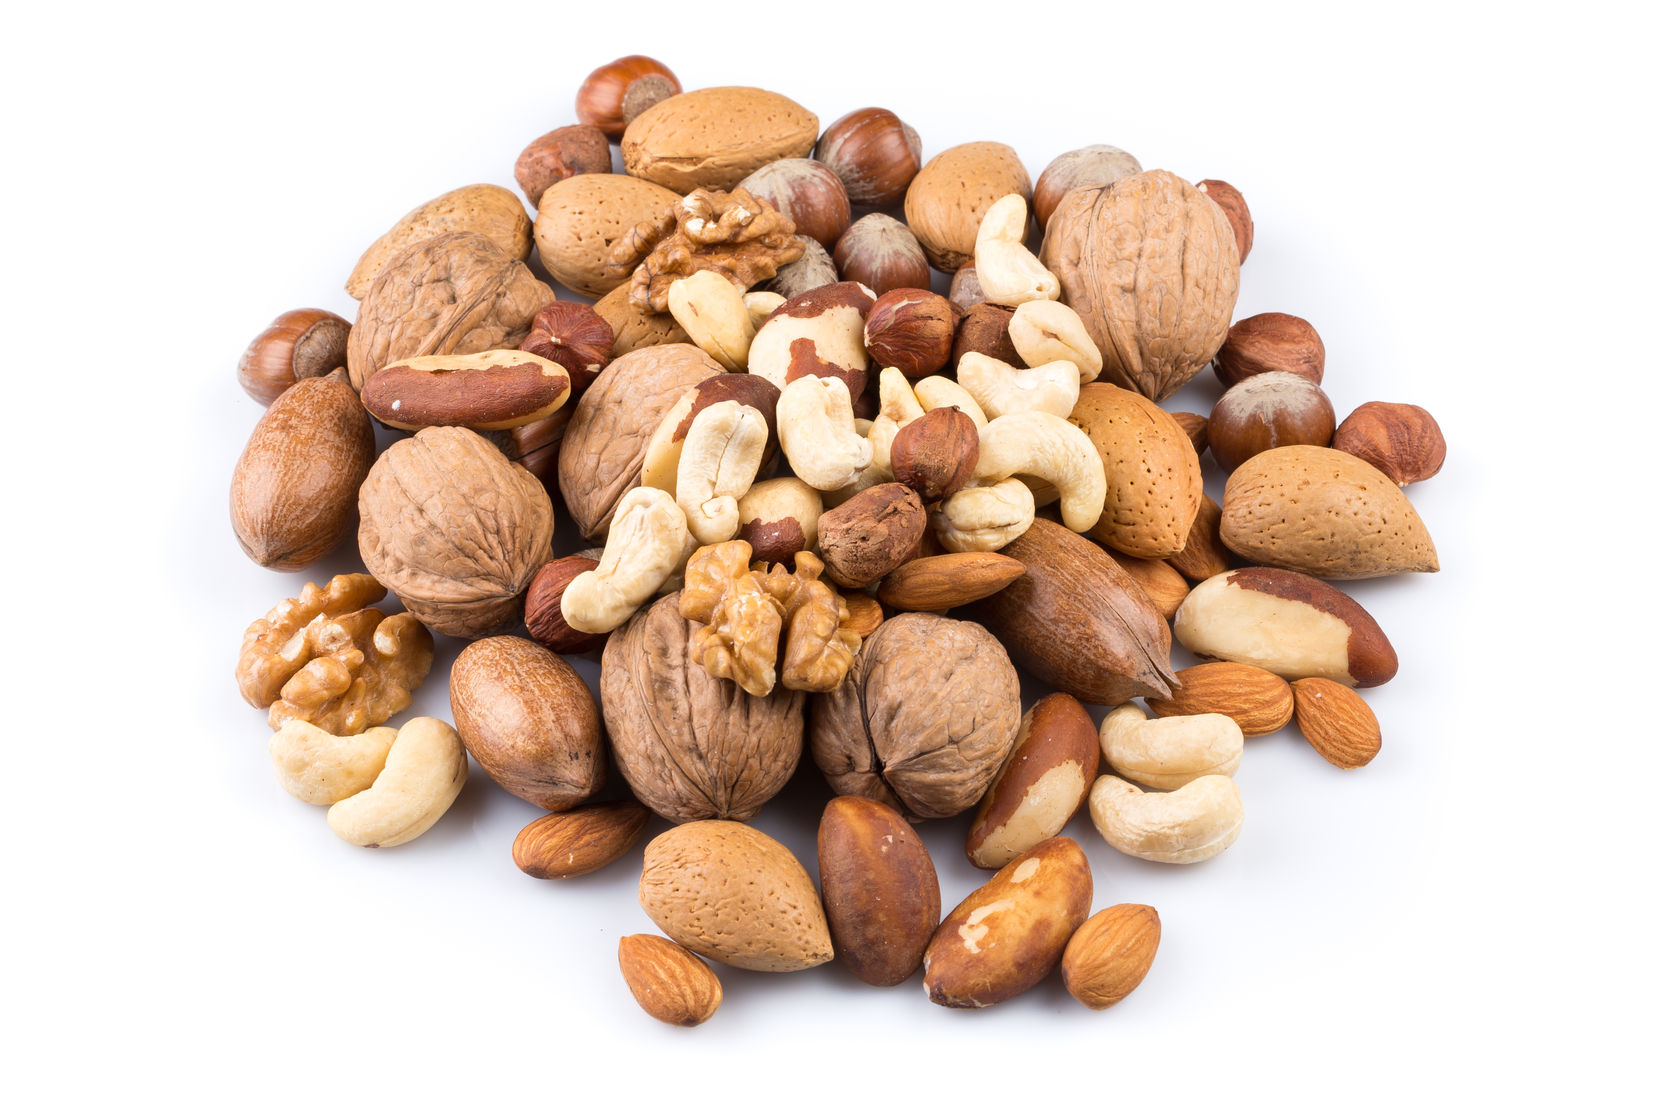 nuts lower risk of weight gain and obesity